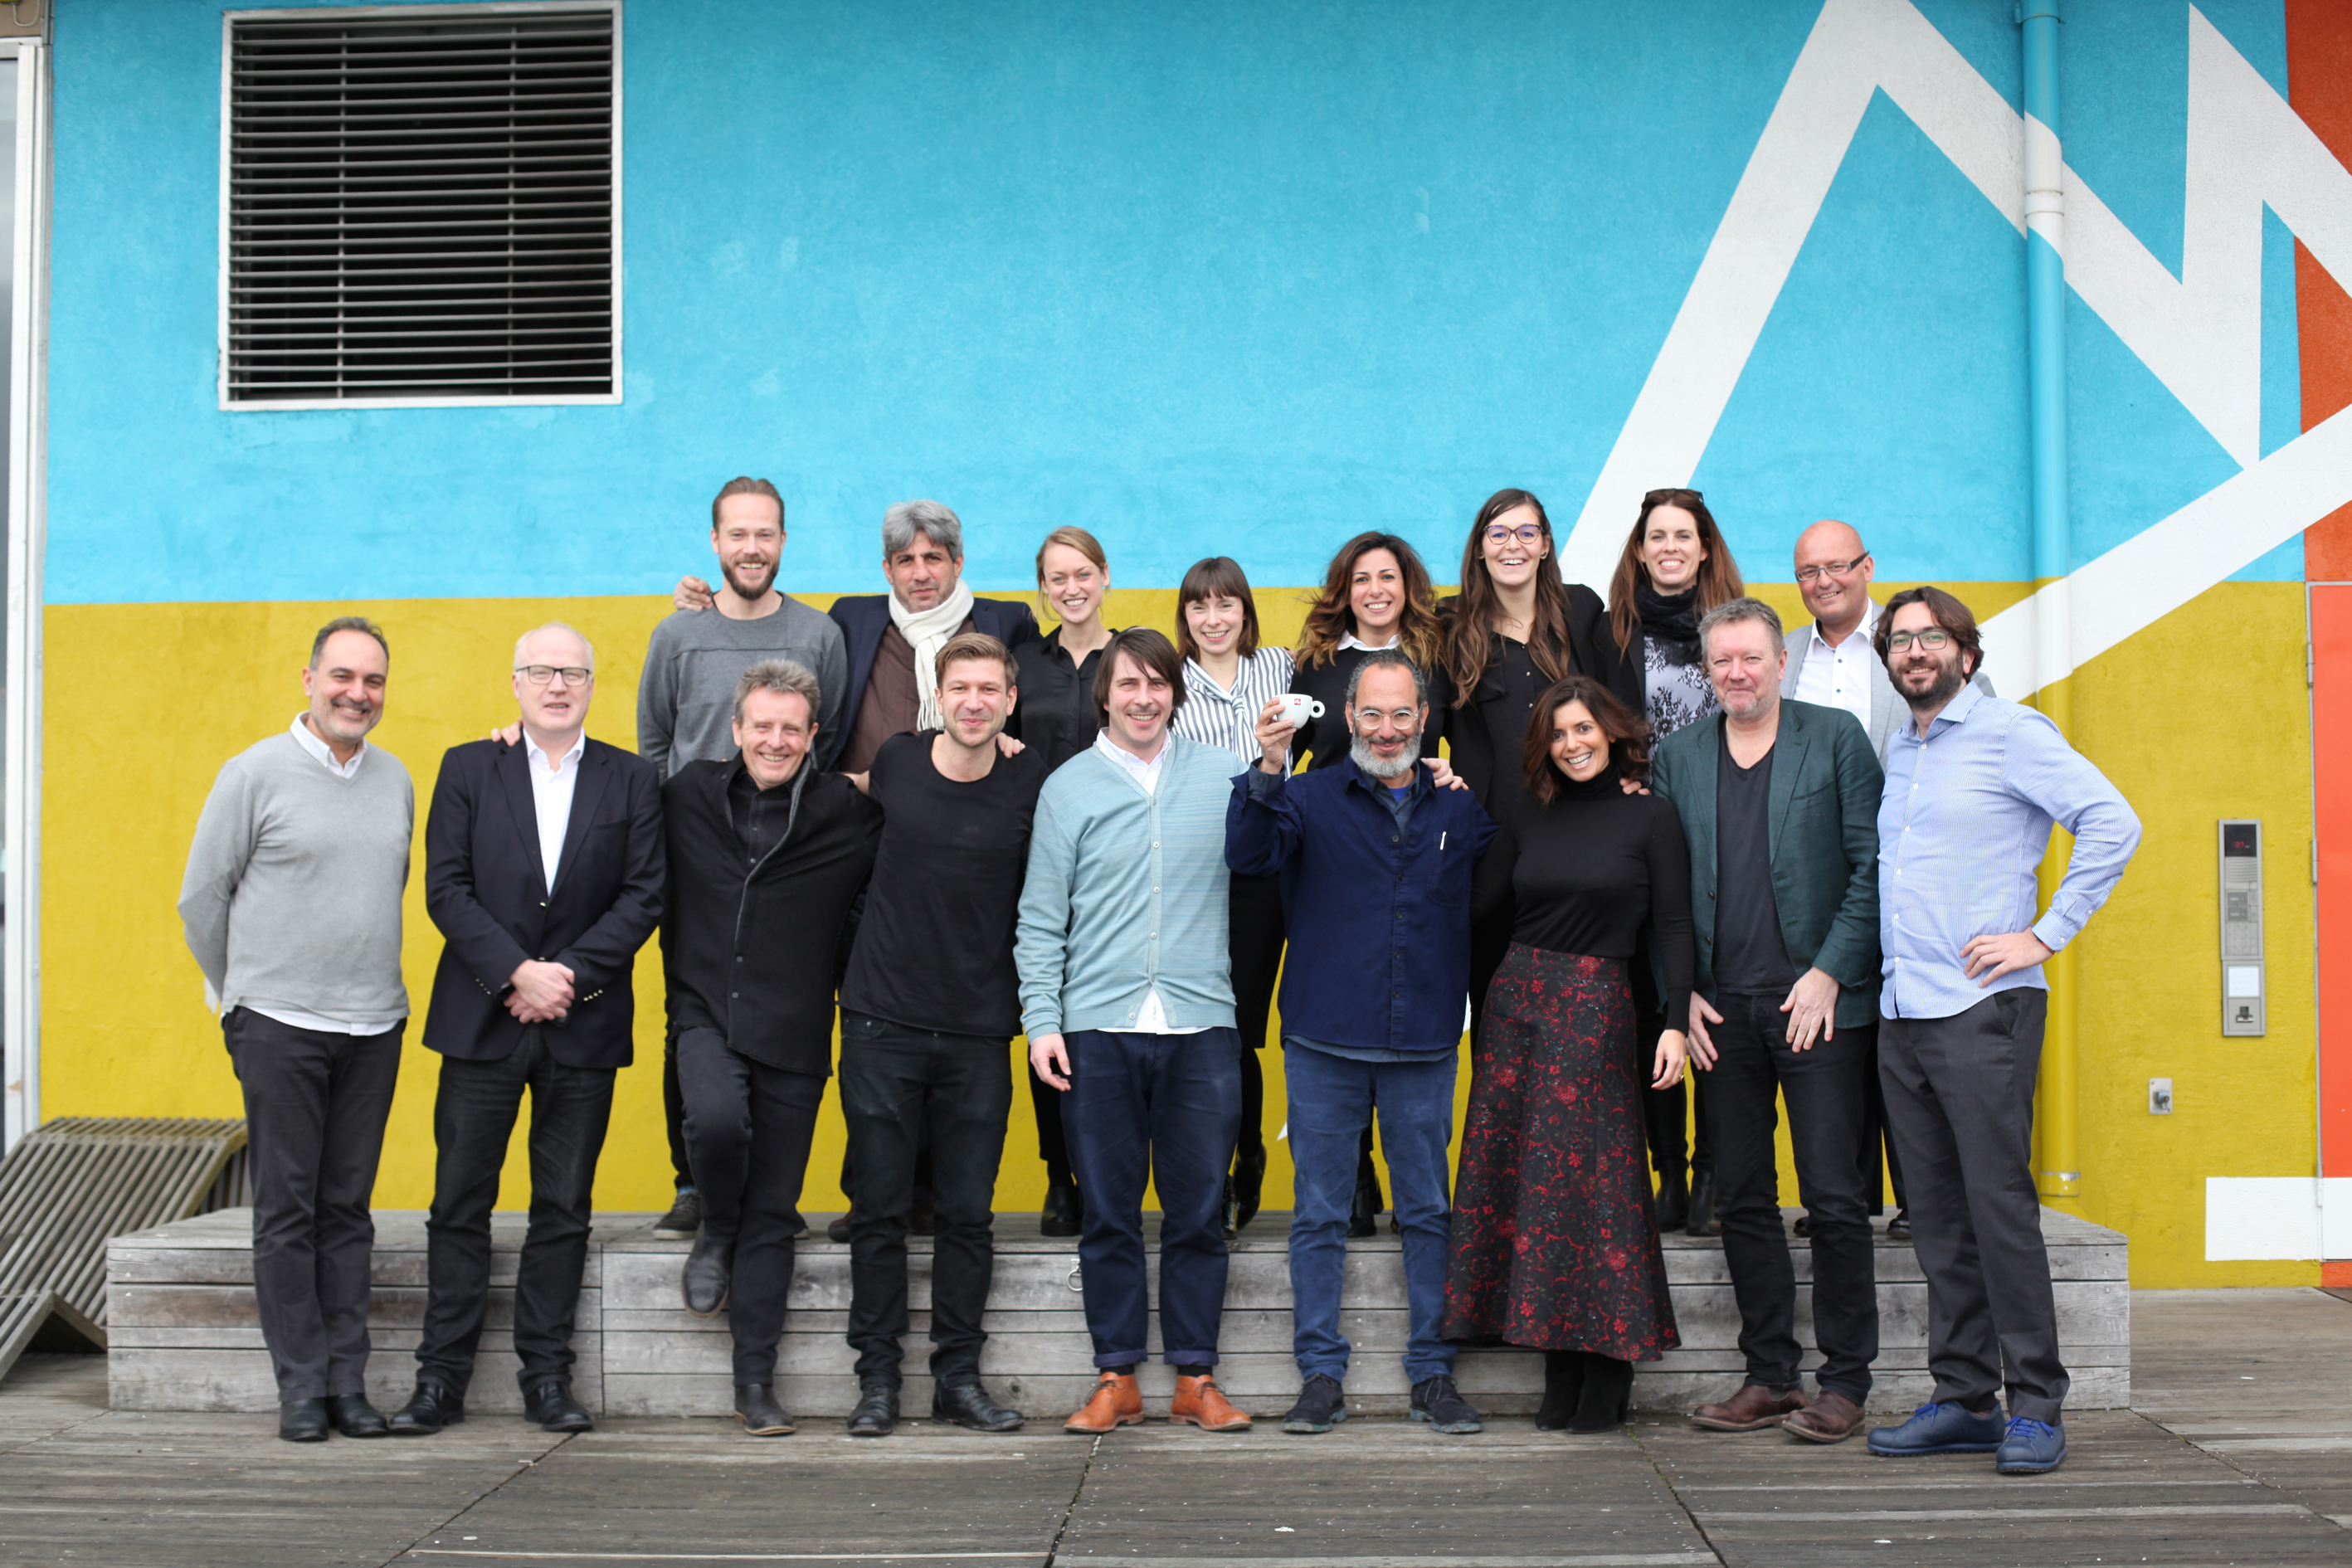 The complete team in Oslo copy